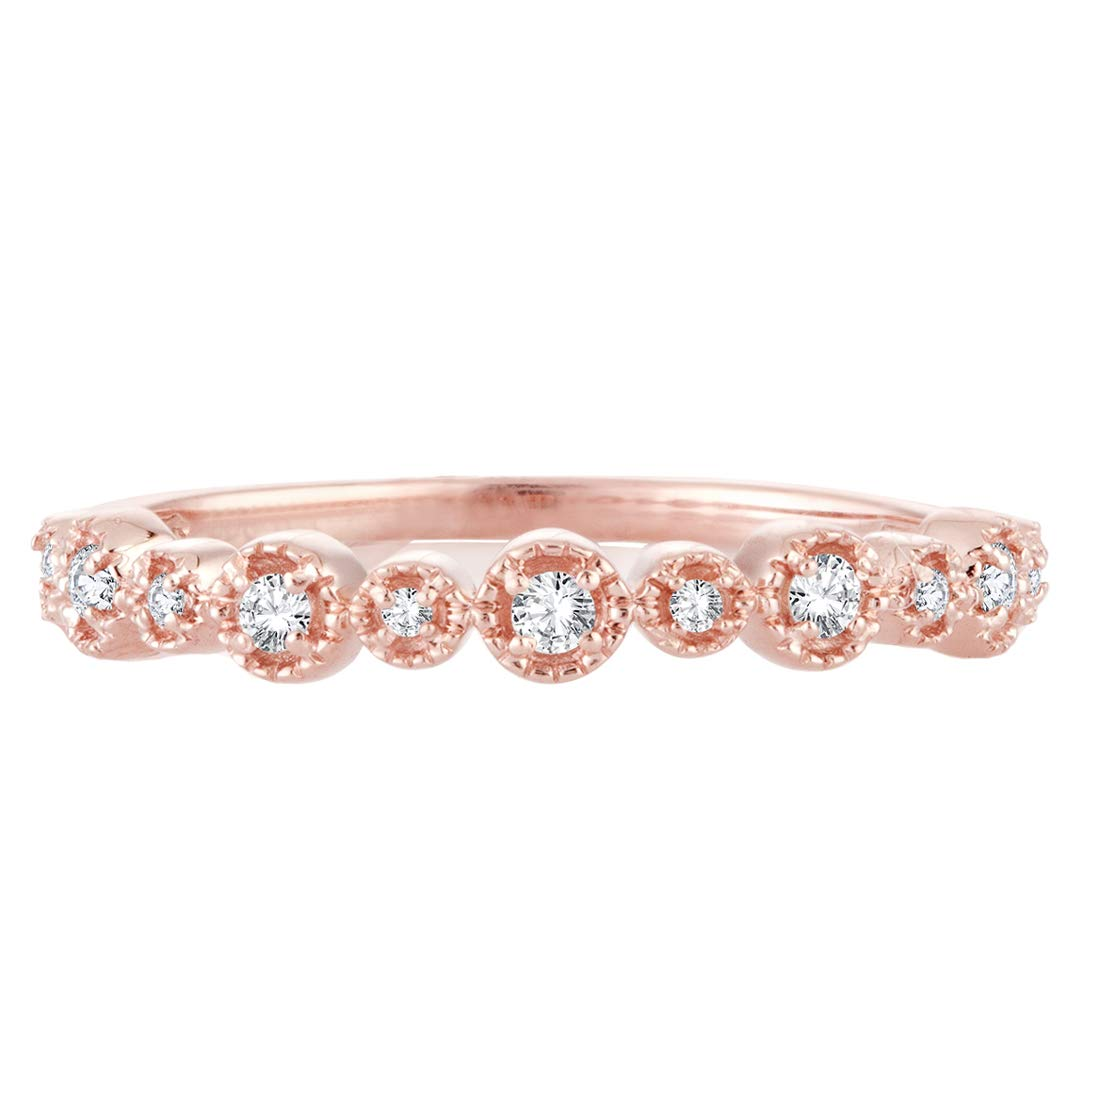 0.11 Cttw Diamond Alternating Band Stackable Vintage Expression Ring In 10k Rose Gold EternalDia GL-1202605000037//Parent